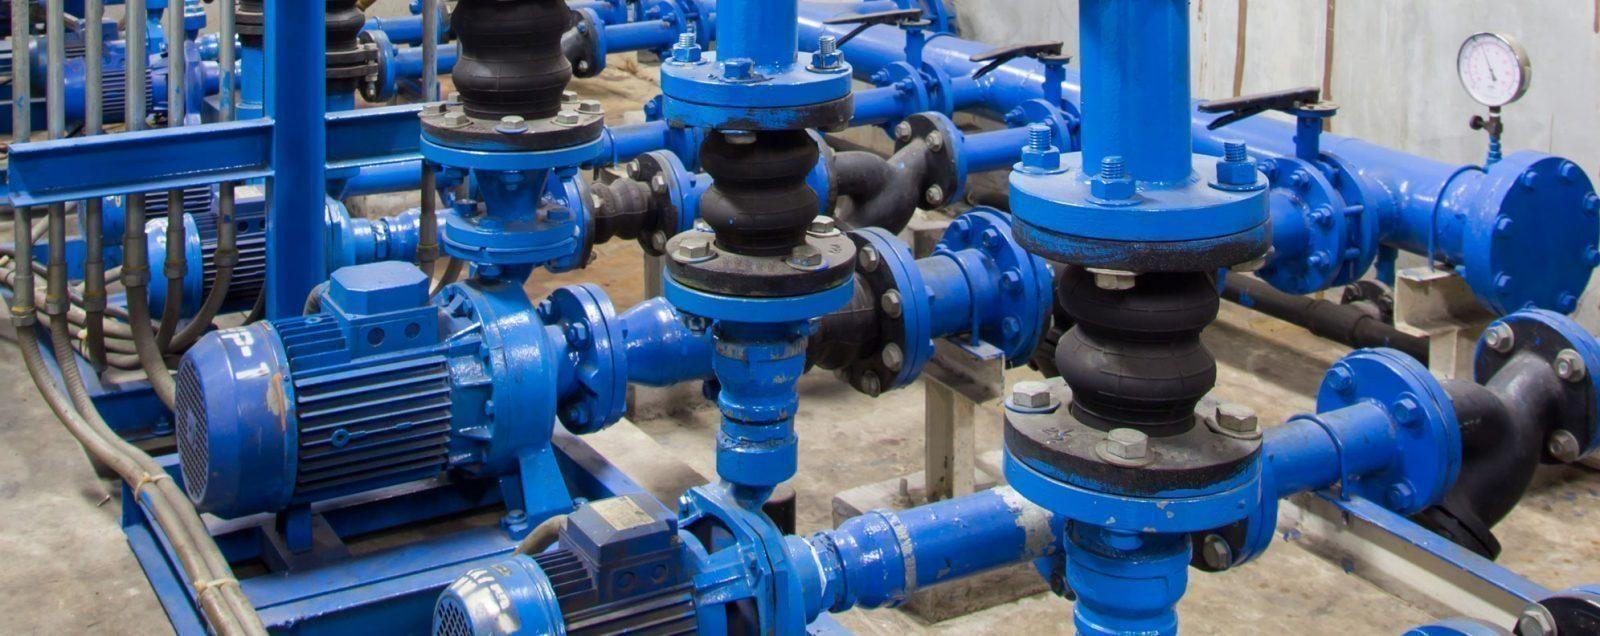 BT-Maric constant flow valves: to protecting centrifugal pumps from cavitation